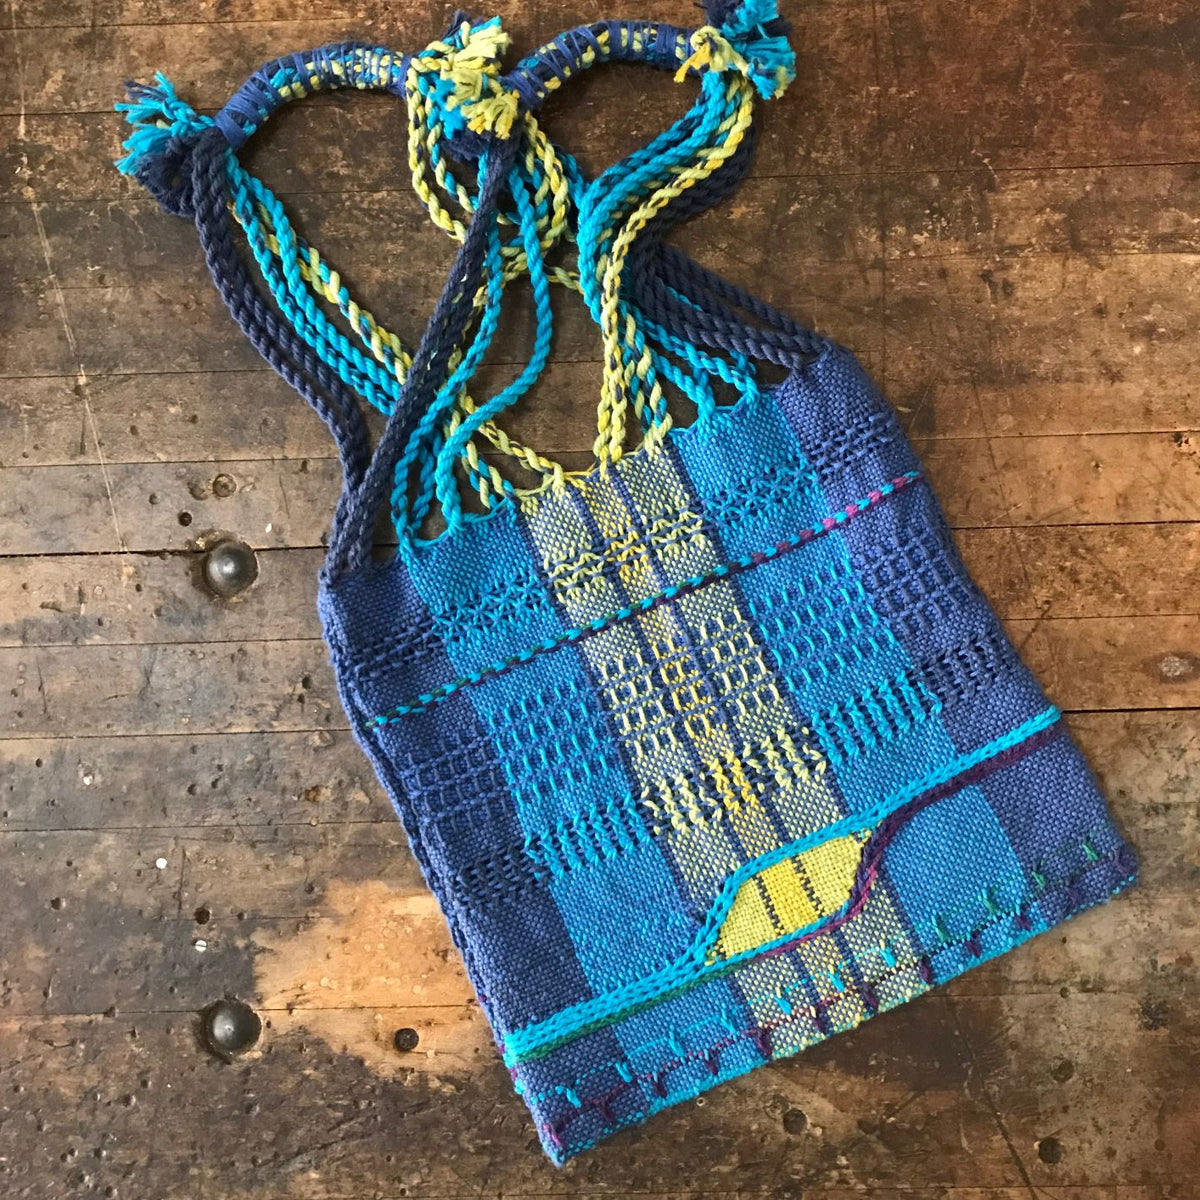 Intro to Rigid Heddle Weaving June 22 10am-3pm